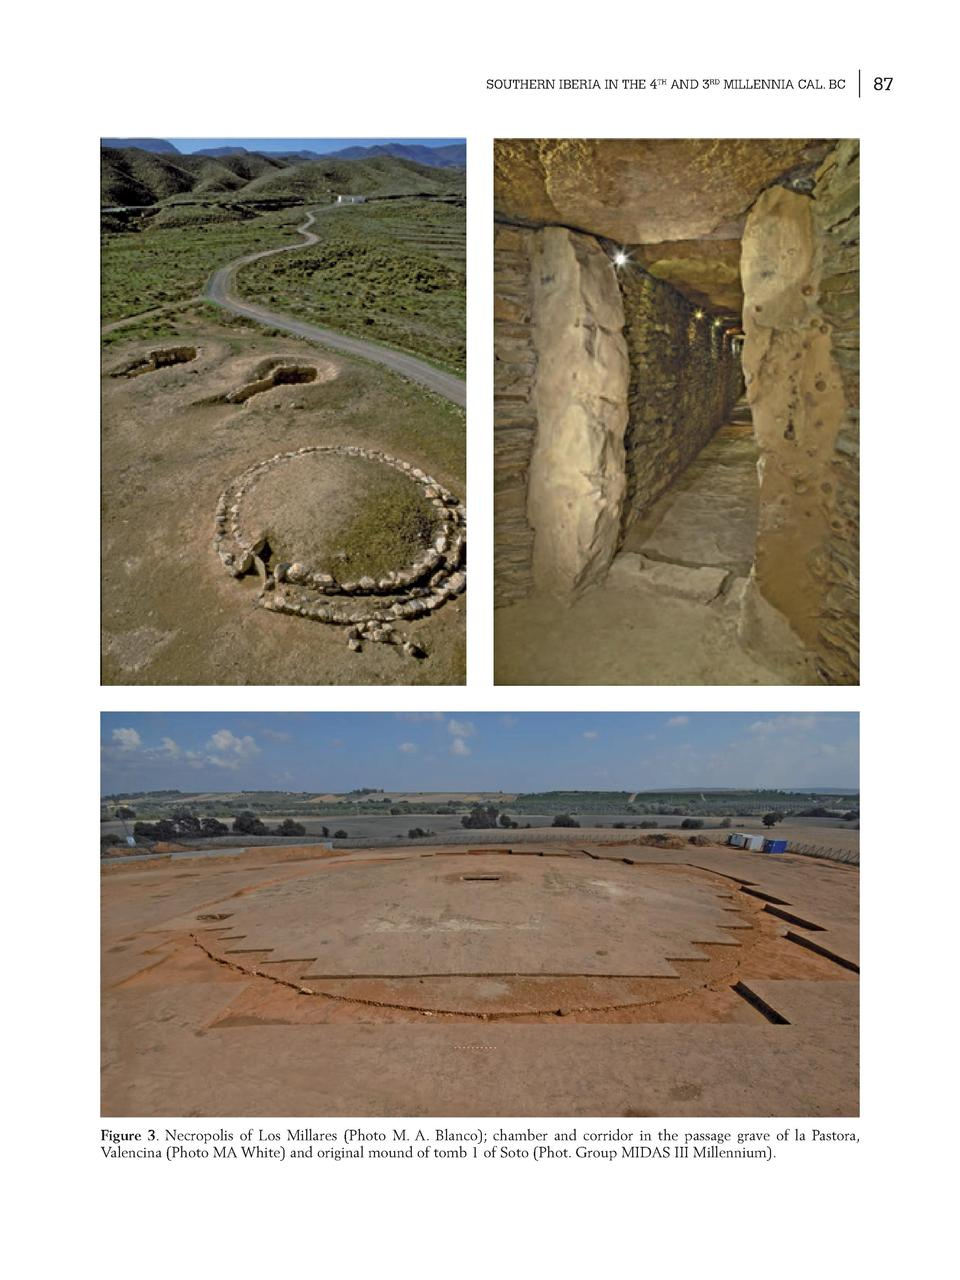 SOUTHERN IBERIA IN THE 4TH AND 3RD MILLENNIA CAL. BC  Figure 3. Necropolis of Los Millares  Photo M. A. Blanco   chamber a...